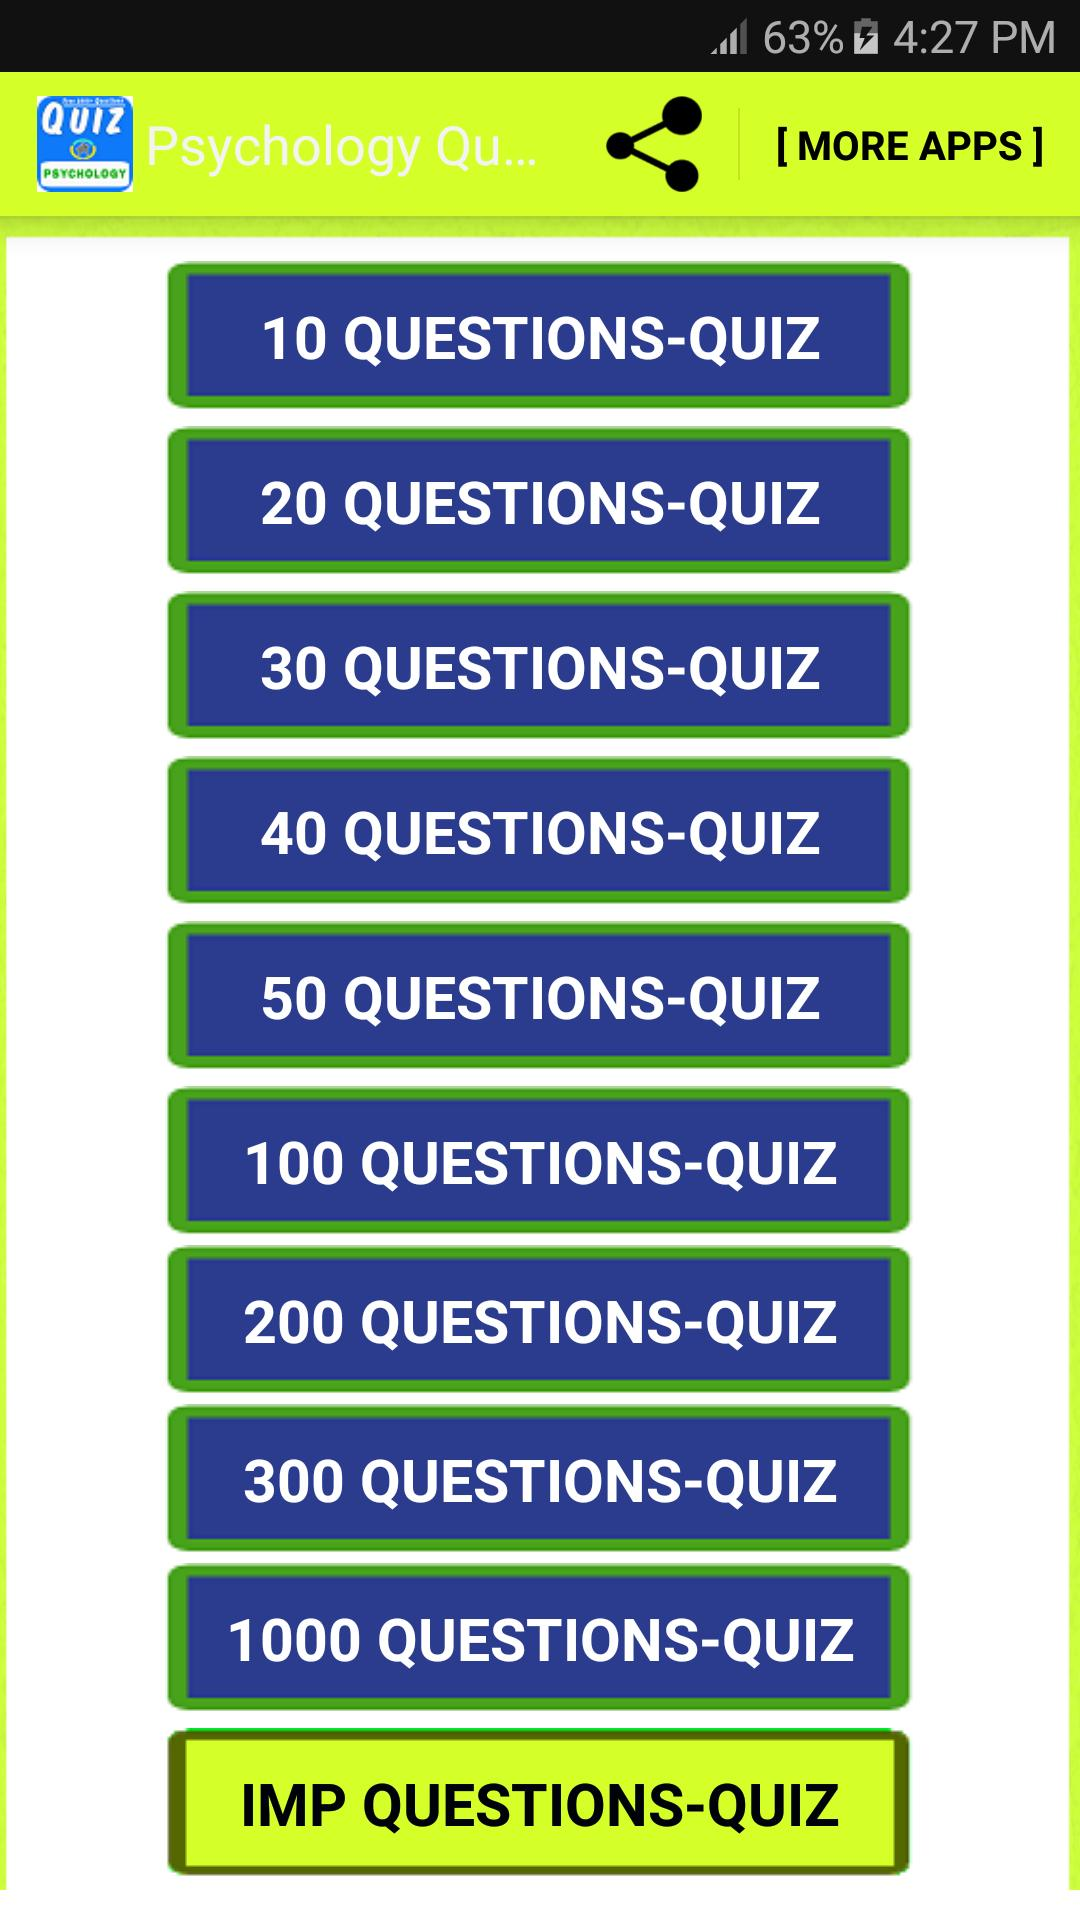 Psychology Quiz Questions for Android - APK Download